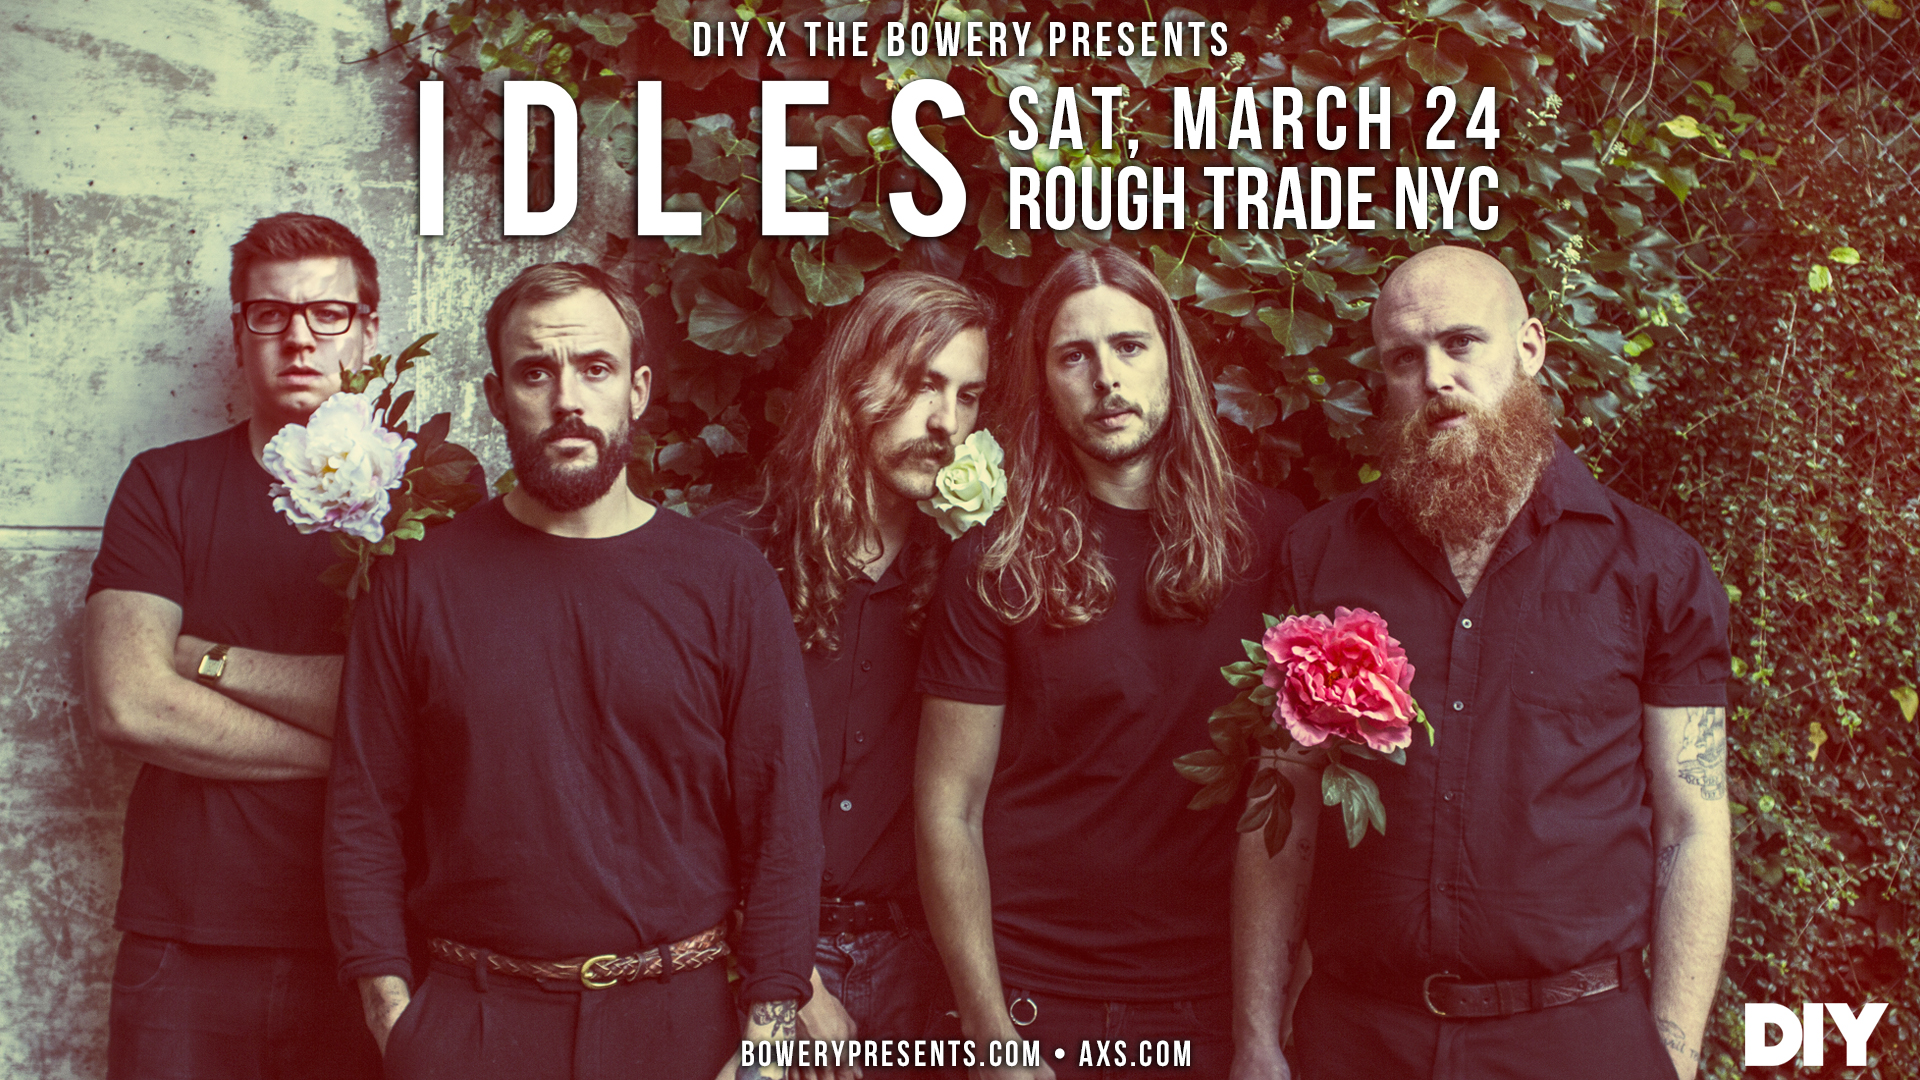 IDLES are playing the second DIY Presents show in New York next month!